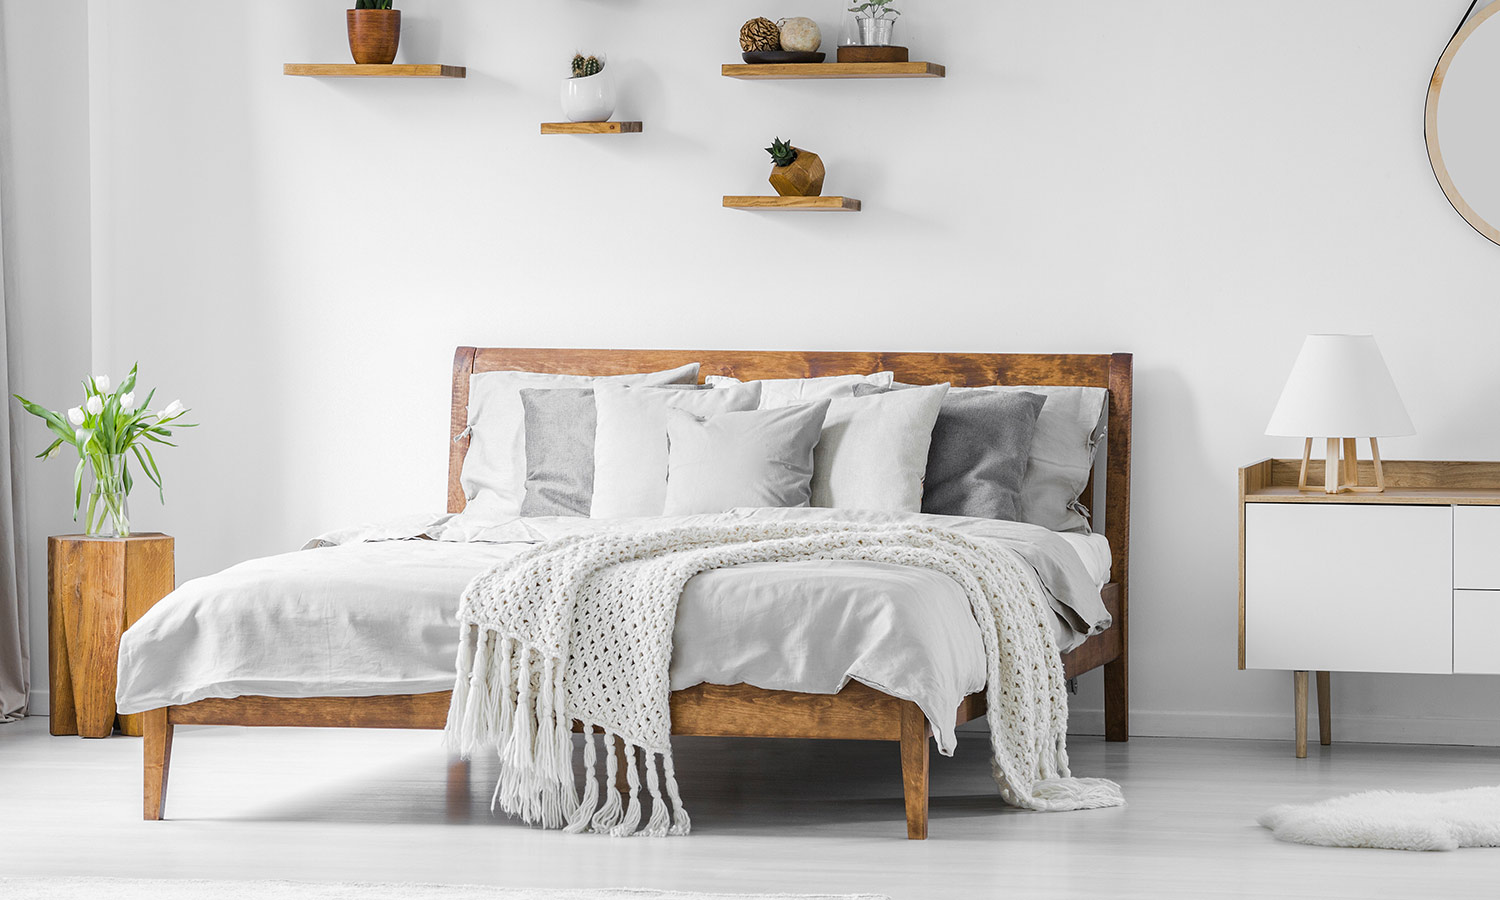 A plain wood-framed bed with modern blankets and pillows on top.